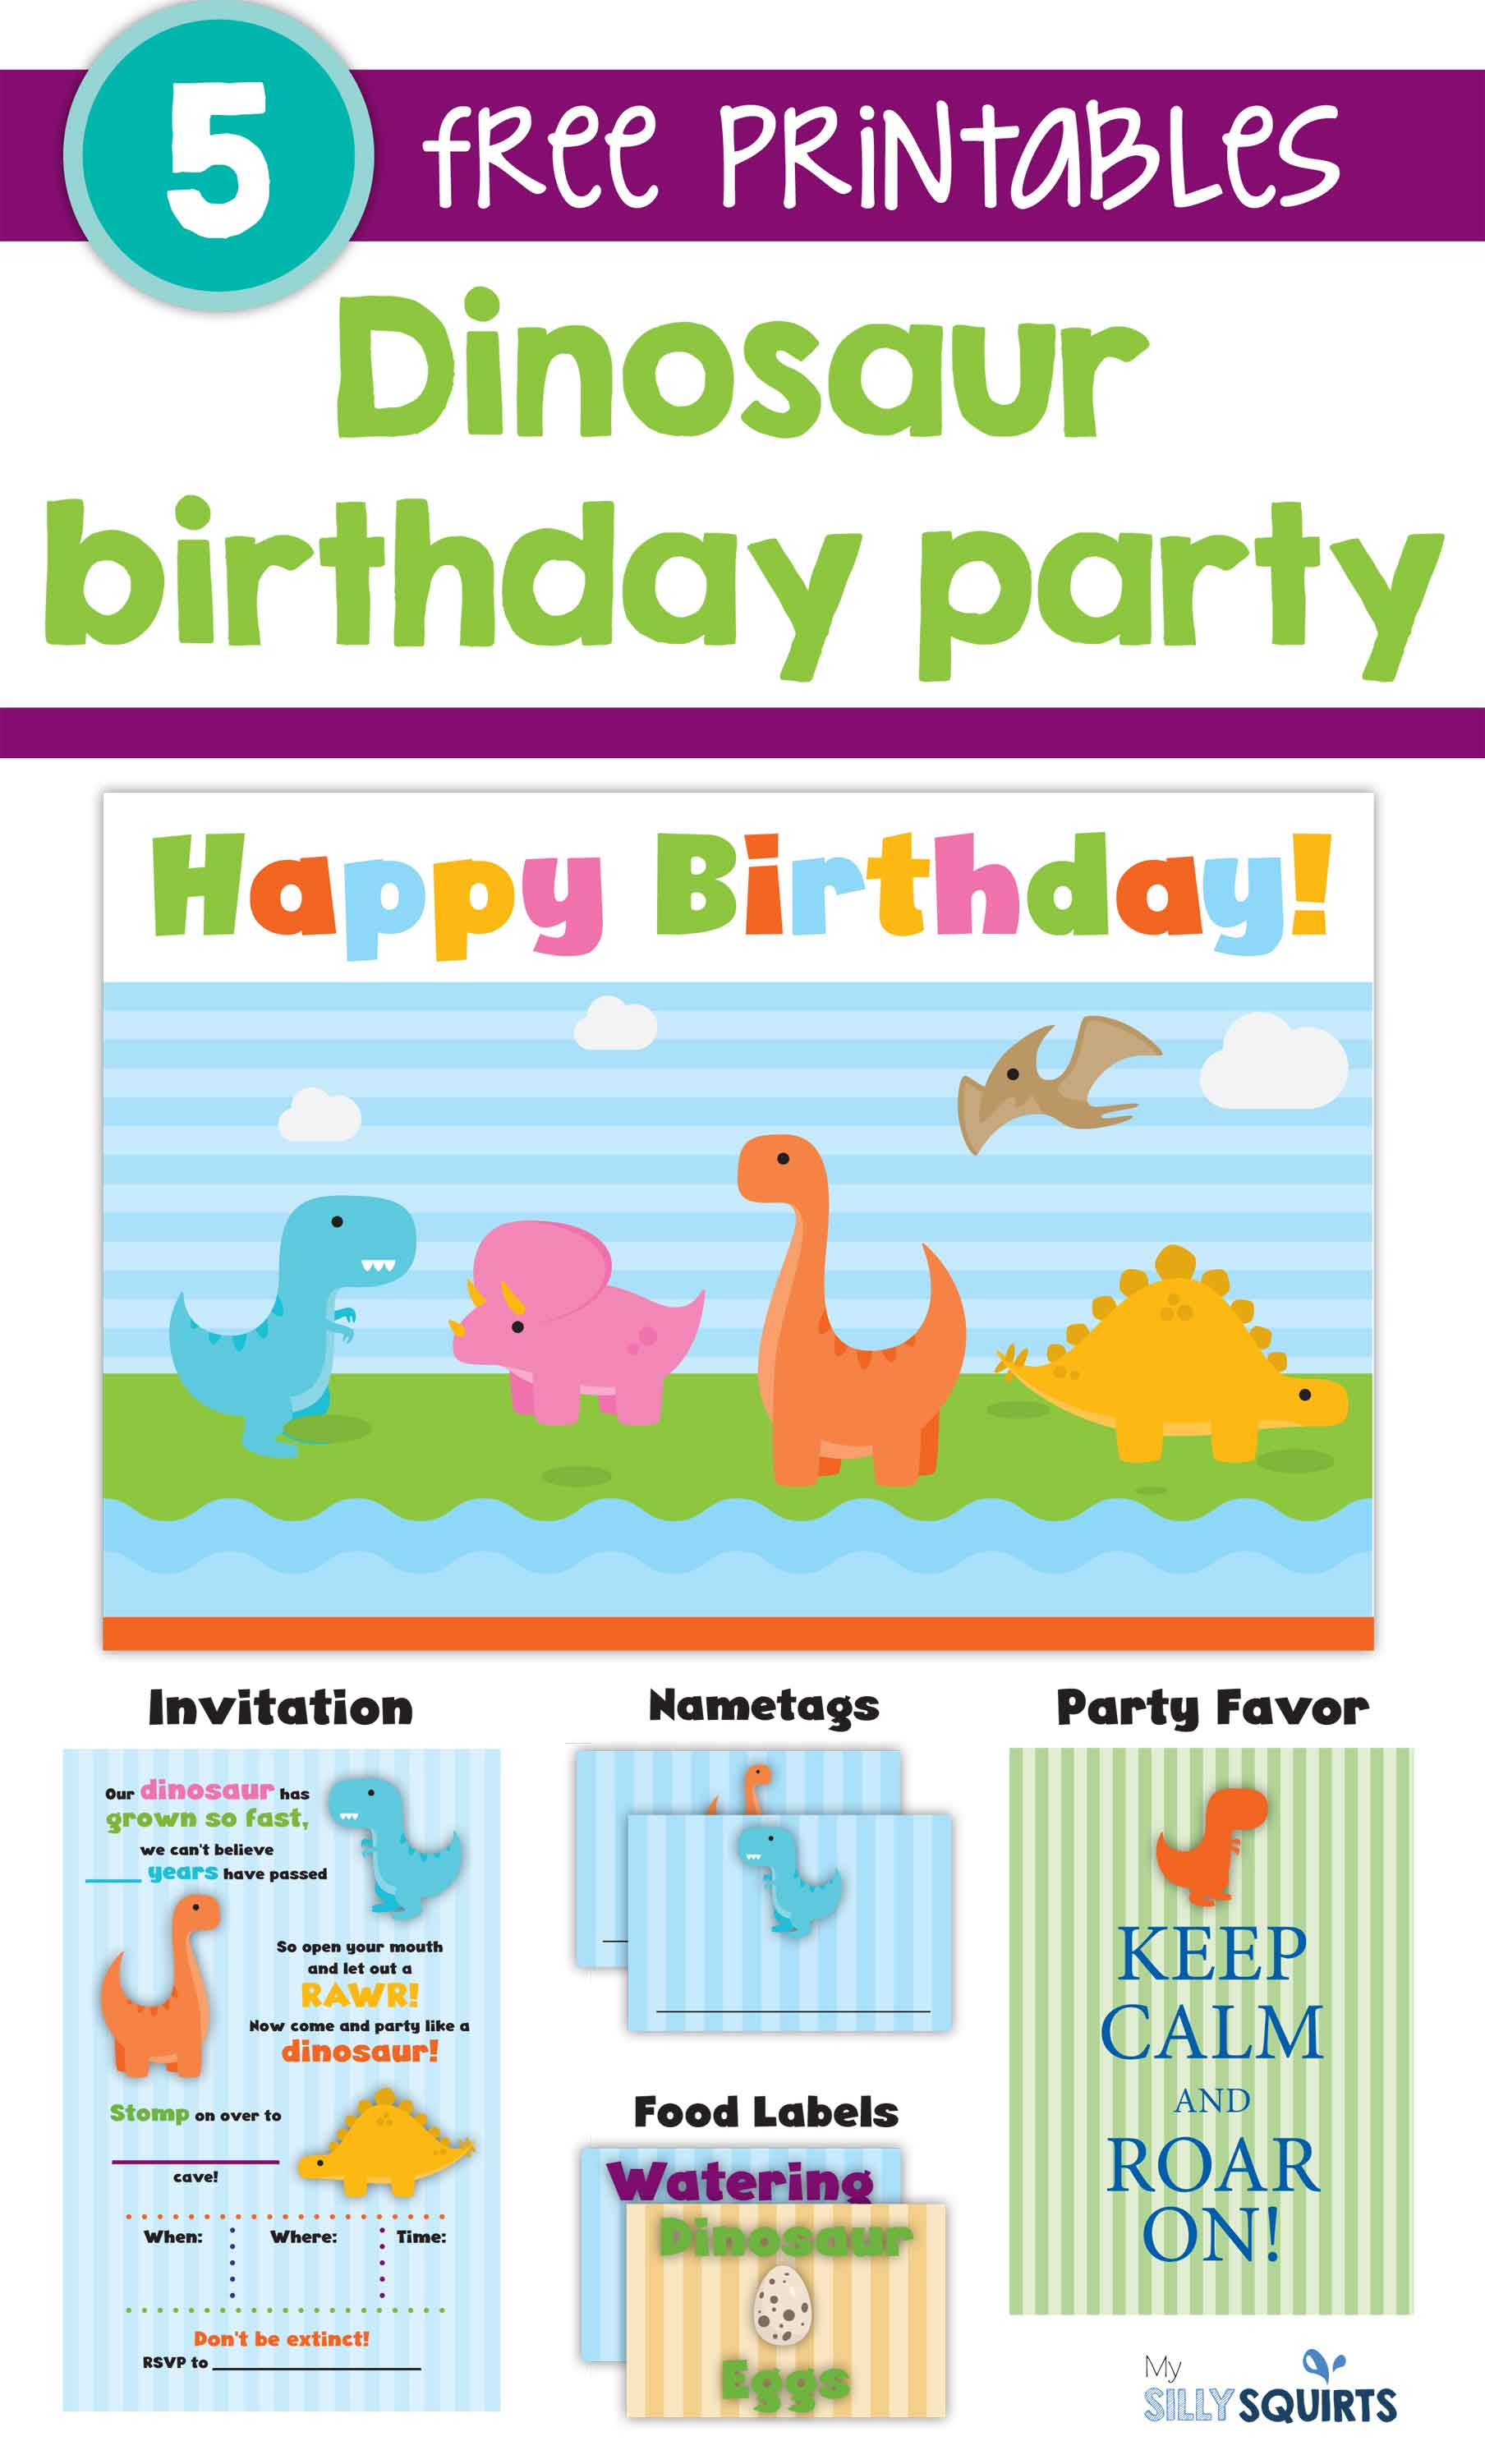 image regarding Free Printable Food Labels for Party referred to as Rawr! Totally free Dinosaur Birthday Celebration Printables My Foolish Squirts